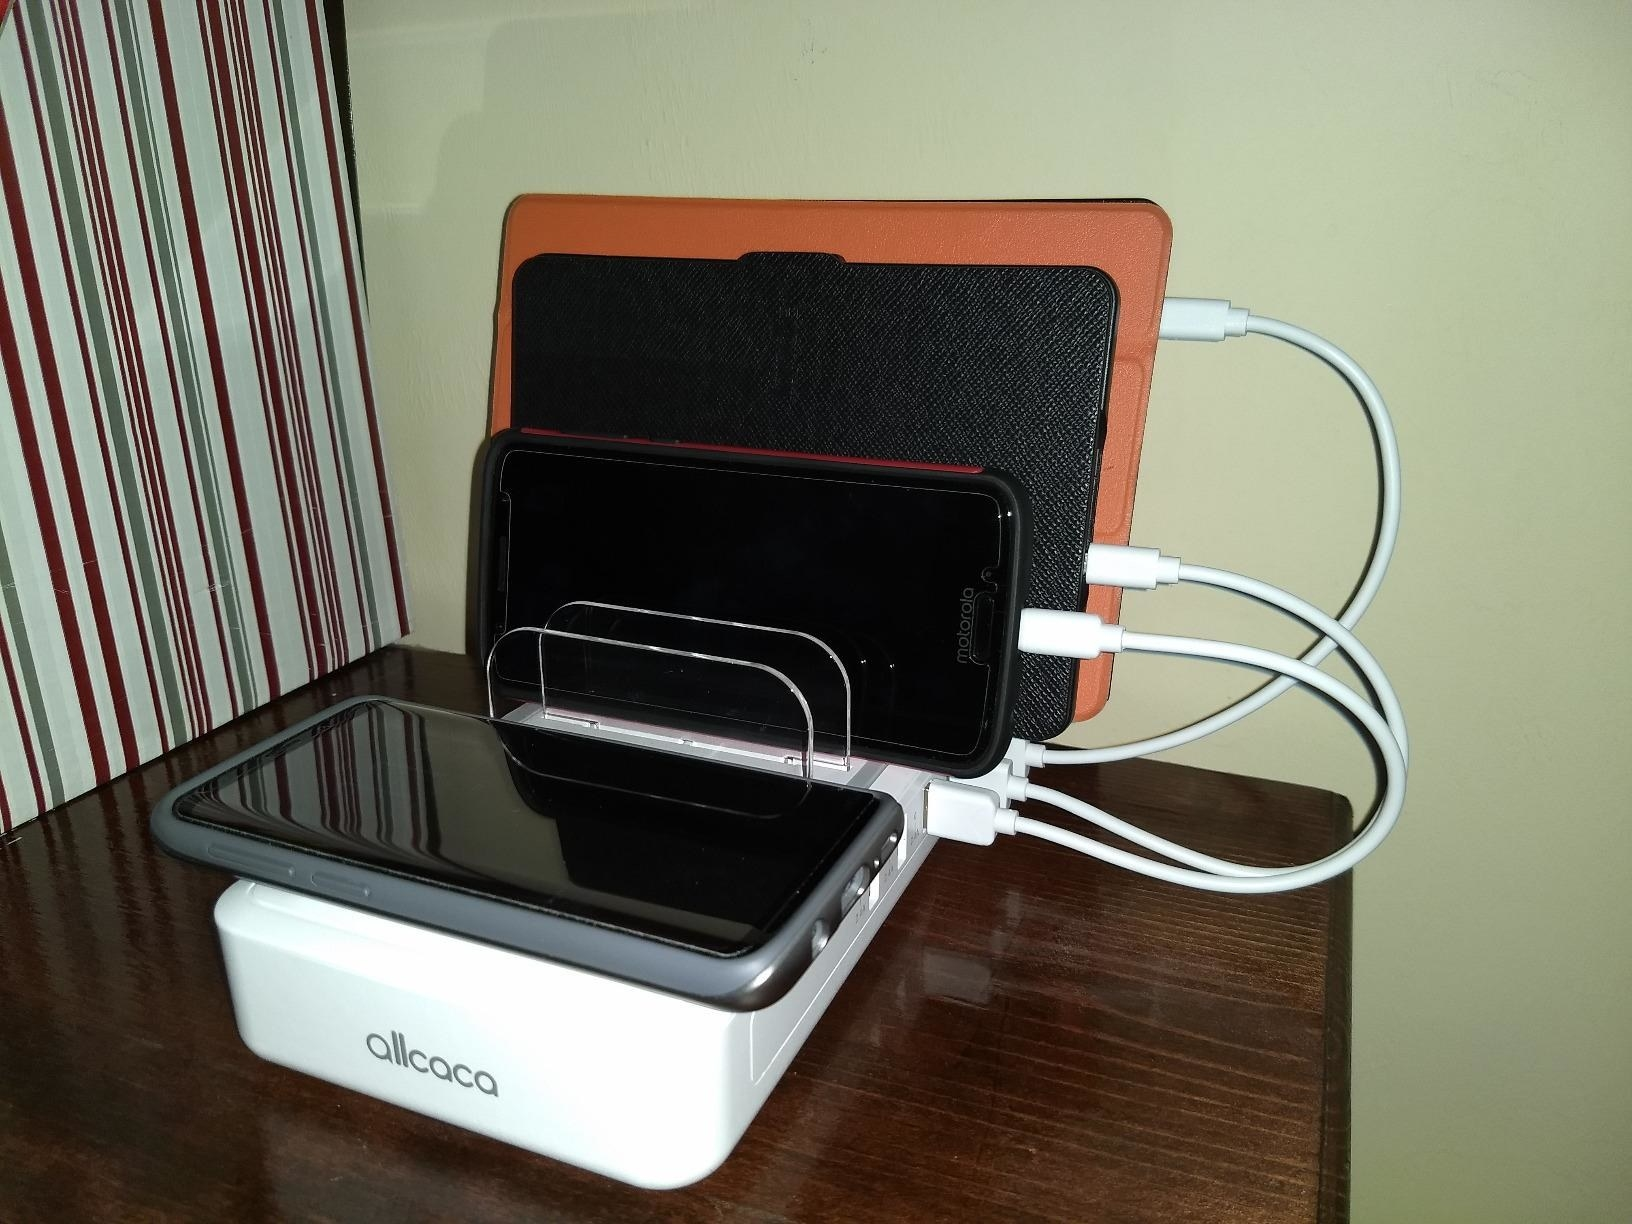 The charger, with a phone on the wireless charging pad, and a phone and two tablets in the charging ports